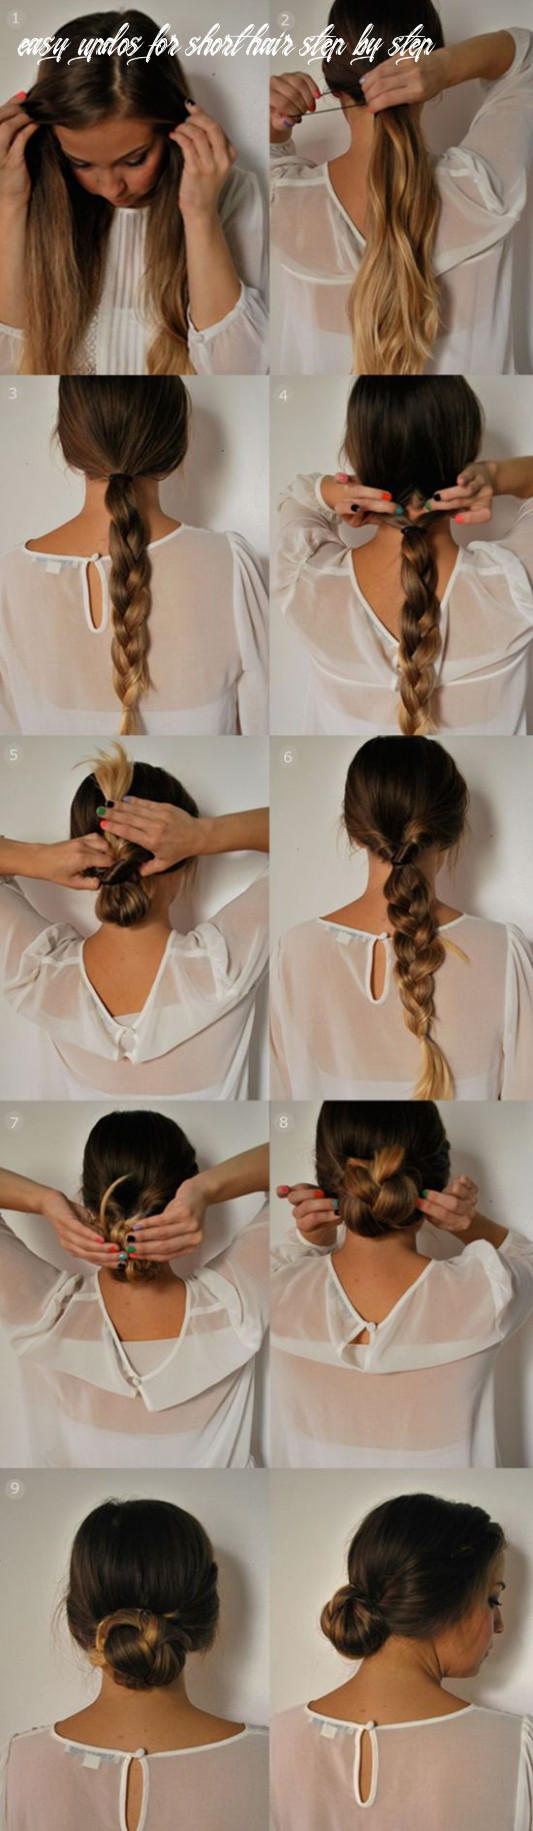 12 Easy 12 Minutes Hairstyles for women - Hairstyles Weekly